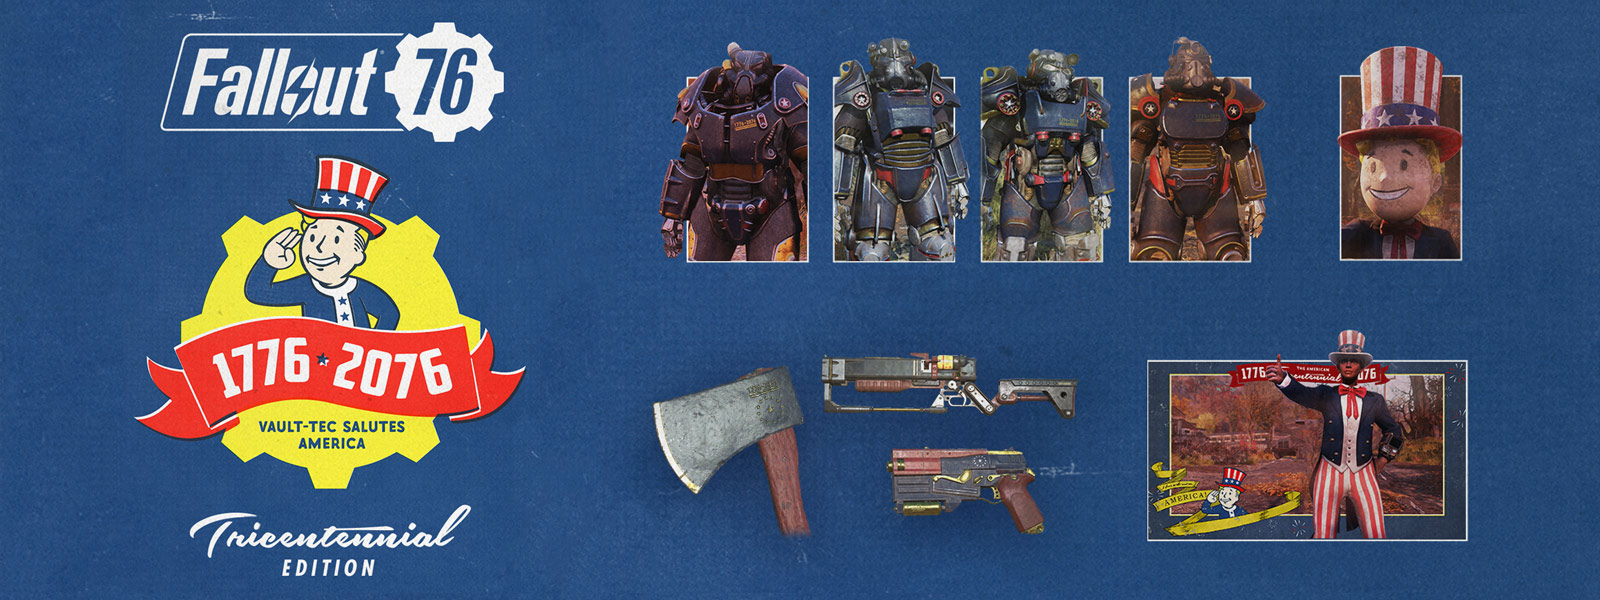 Fallout 76, spectacularly handsome vault boy saluting with a tricentennial banner, and a collage of power armour and weapons on a blue textured background